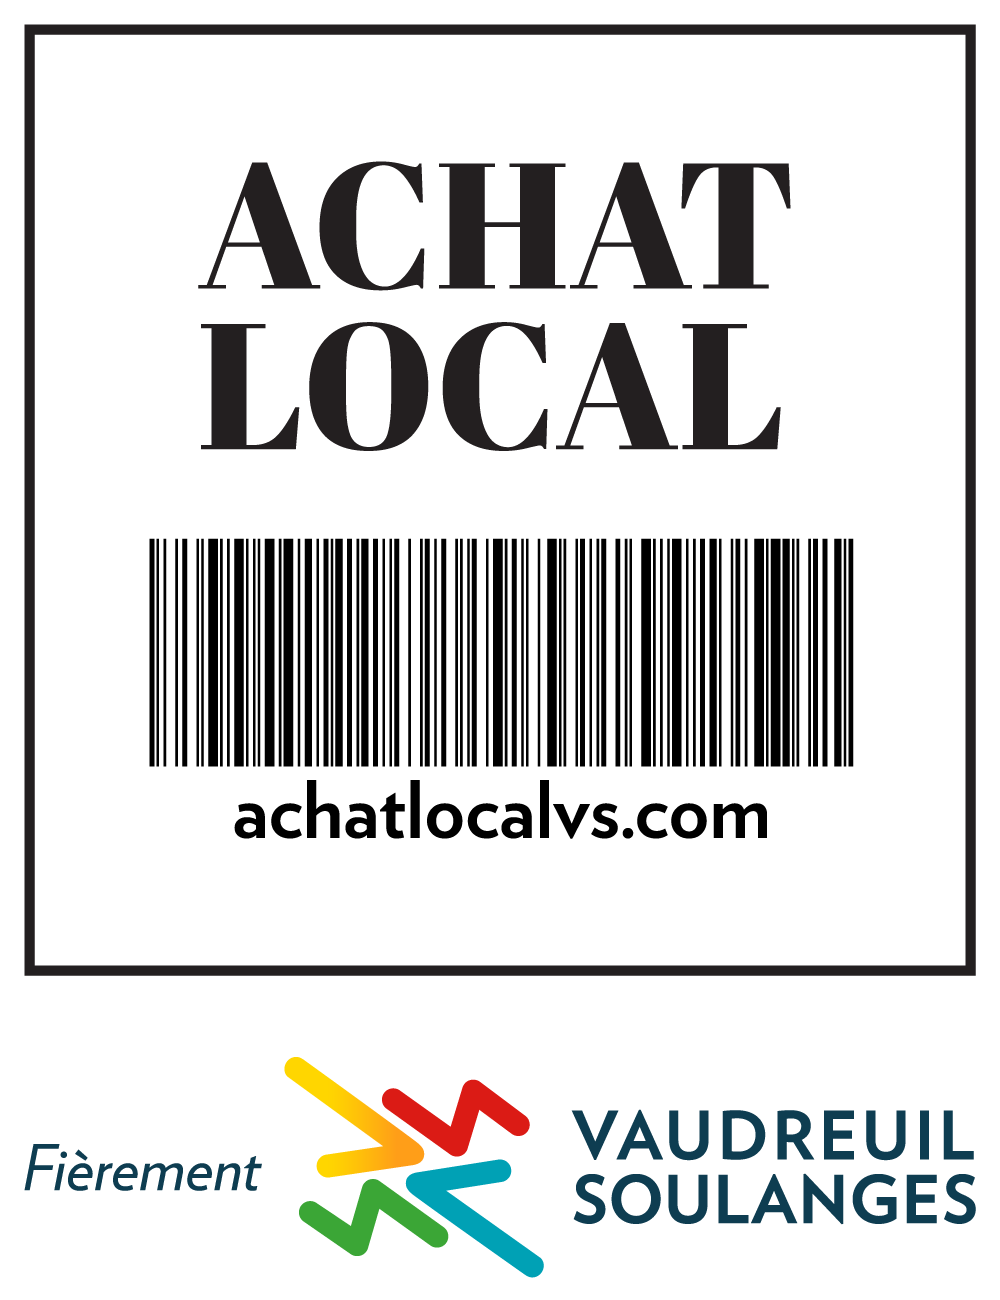 Logo_achatlocal_vertical_fond_trans.png (43 KB)